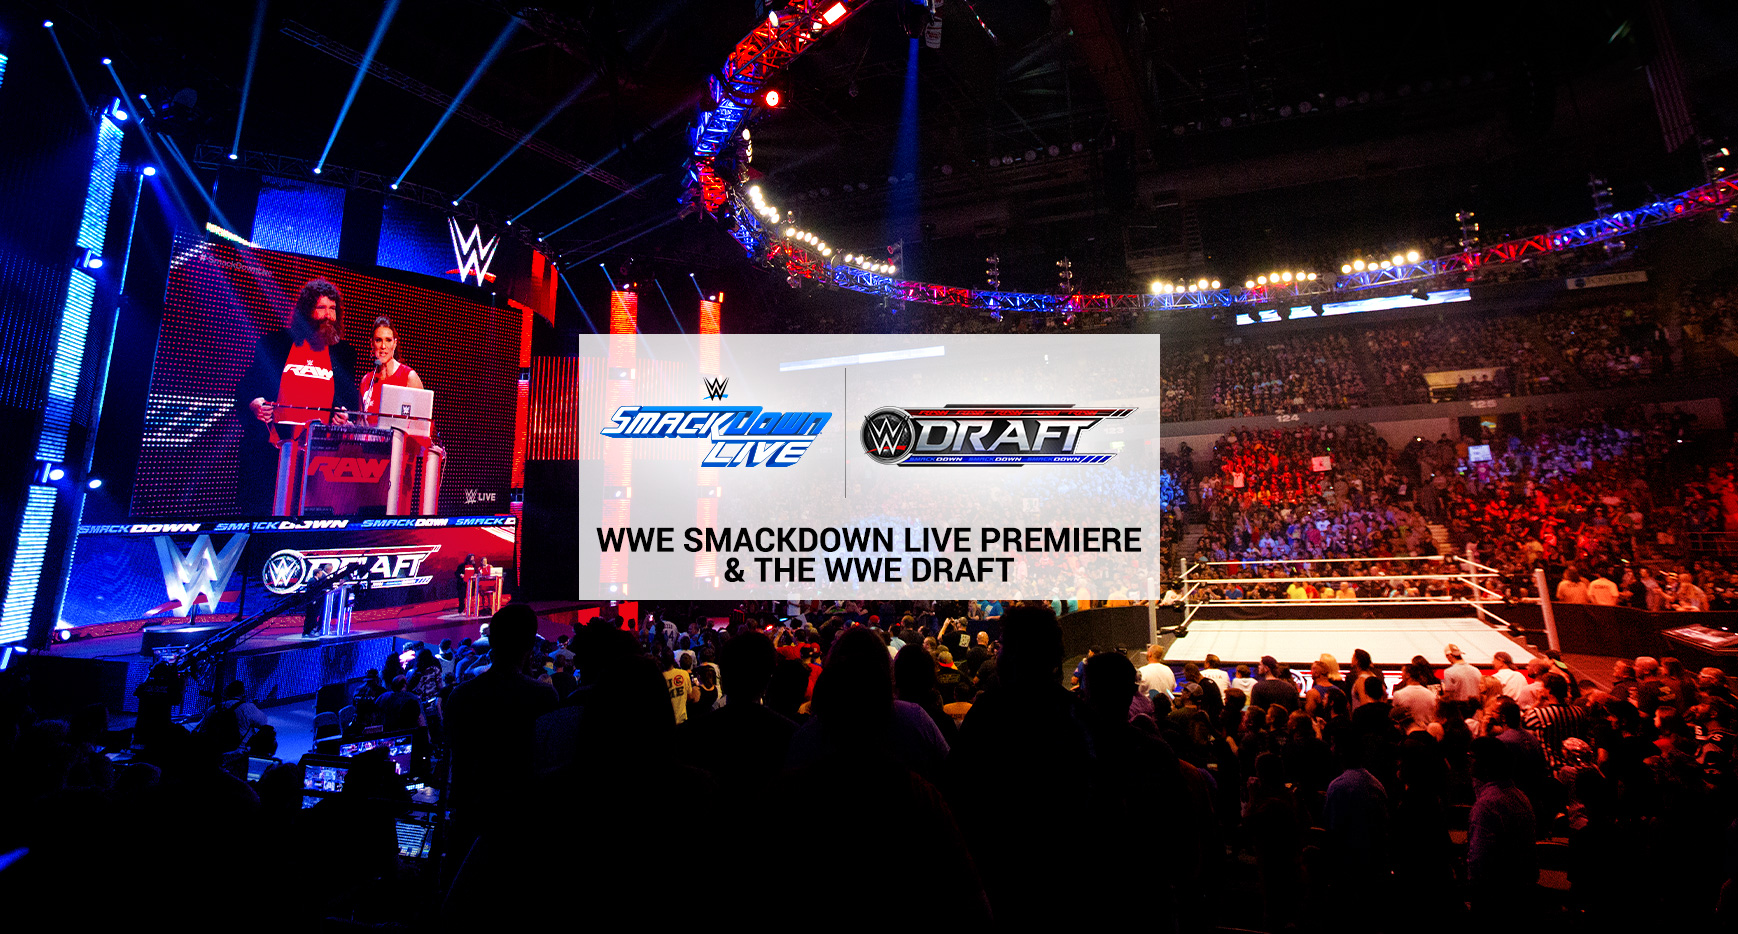 Wwe Smackdown Live Premiere And Wwe Draft The Shorty Awards